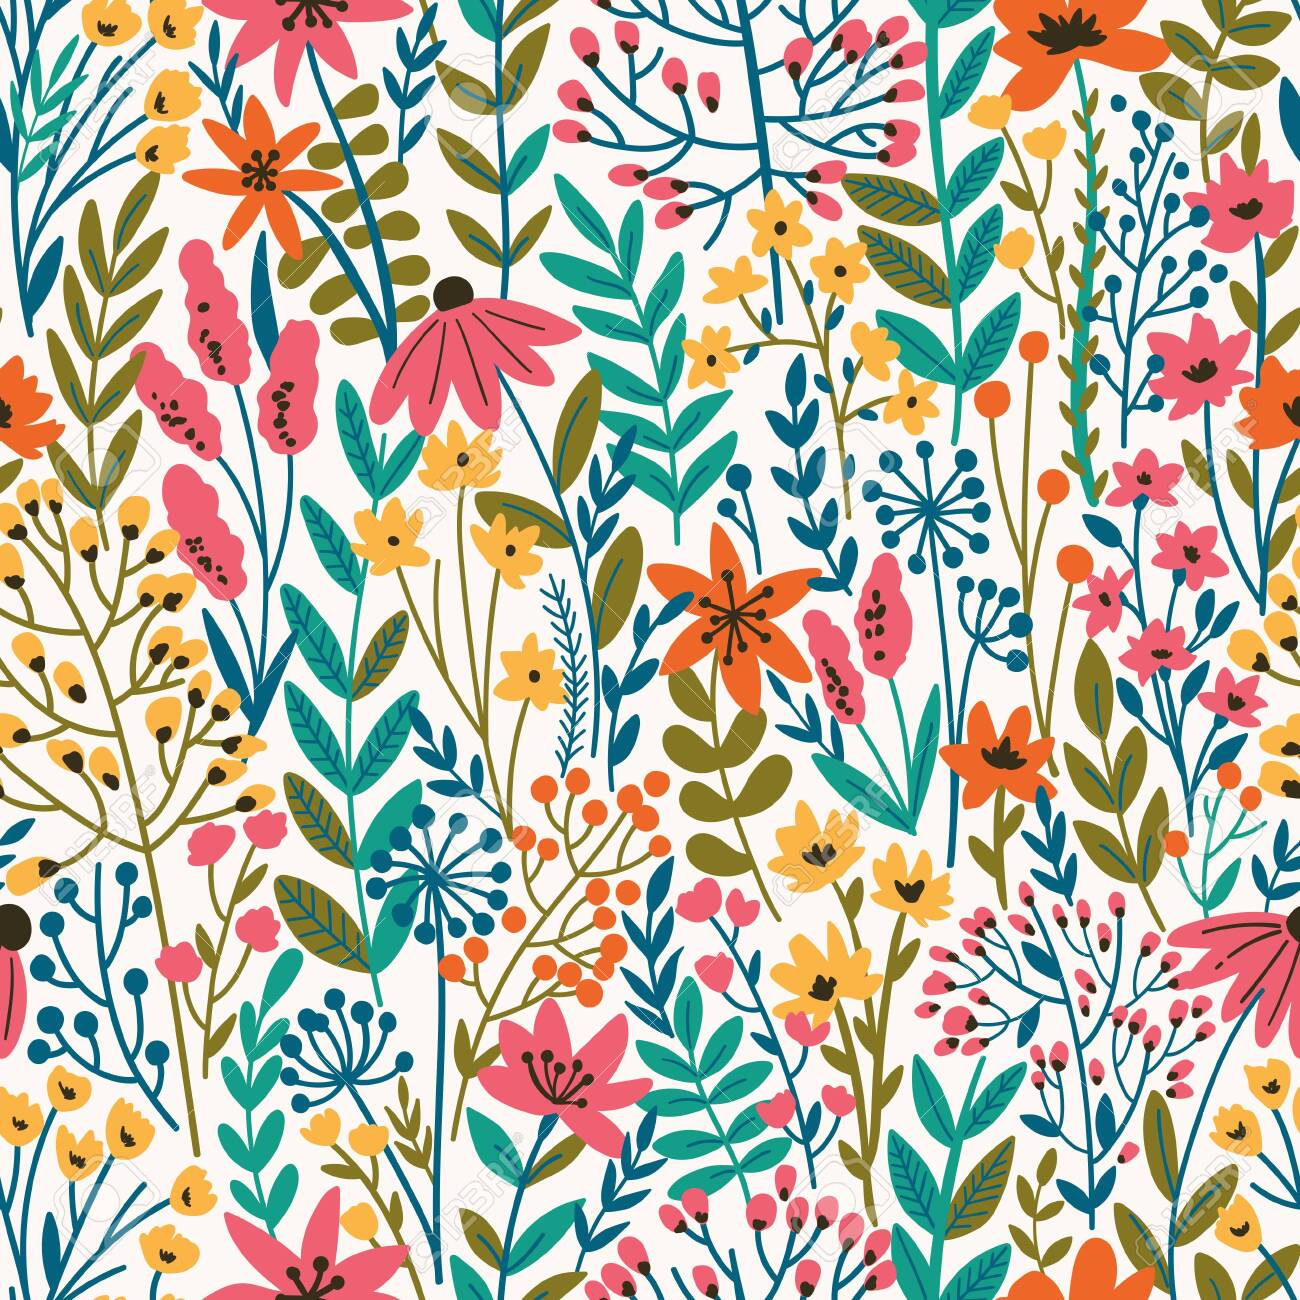 Cute Floral seamless pattern with tiny flower. Wild flowers illustration. Elegant template for fashion prints. - 149966299